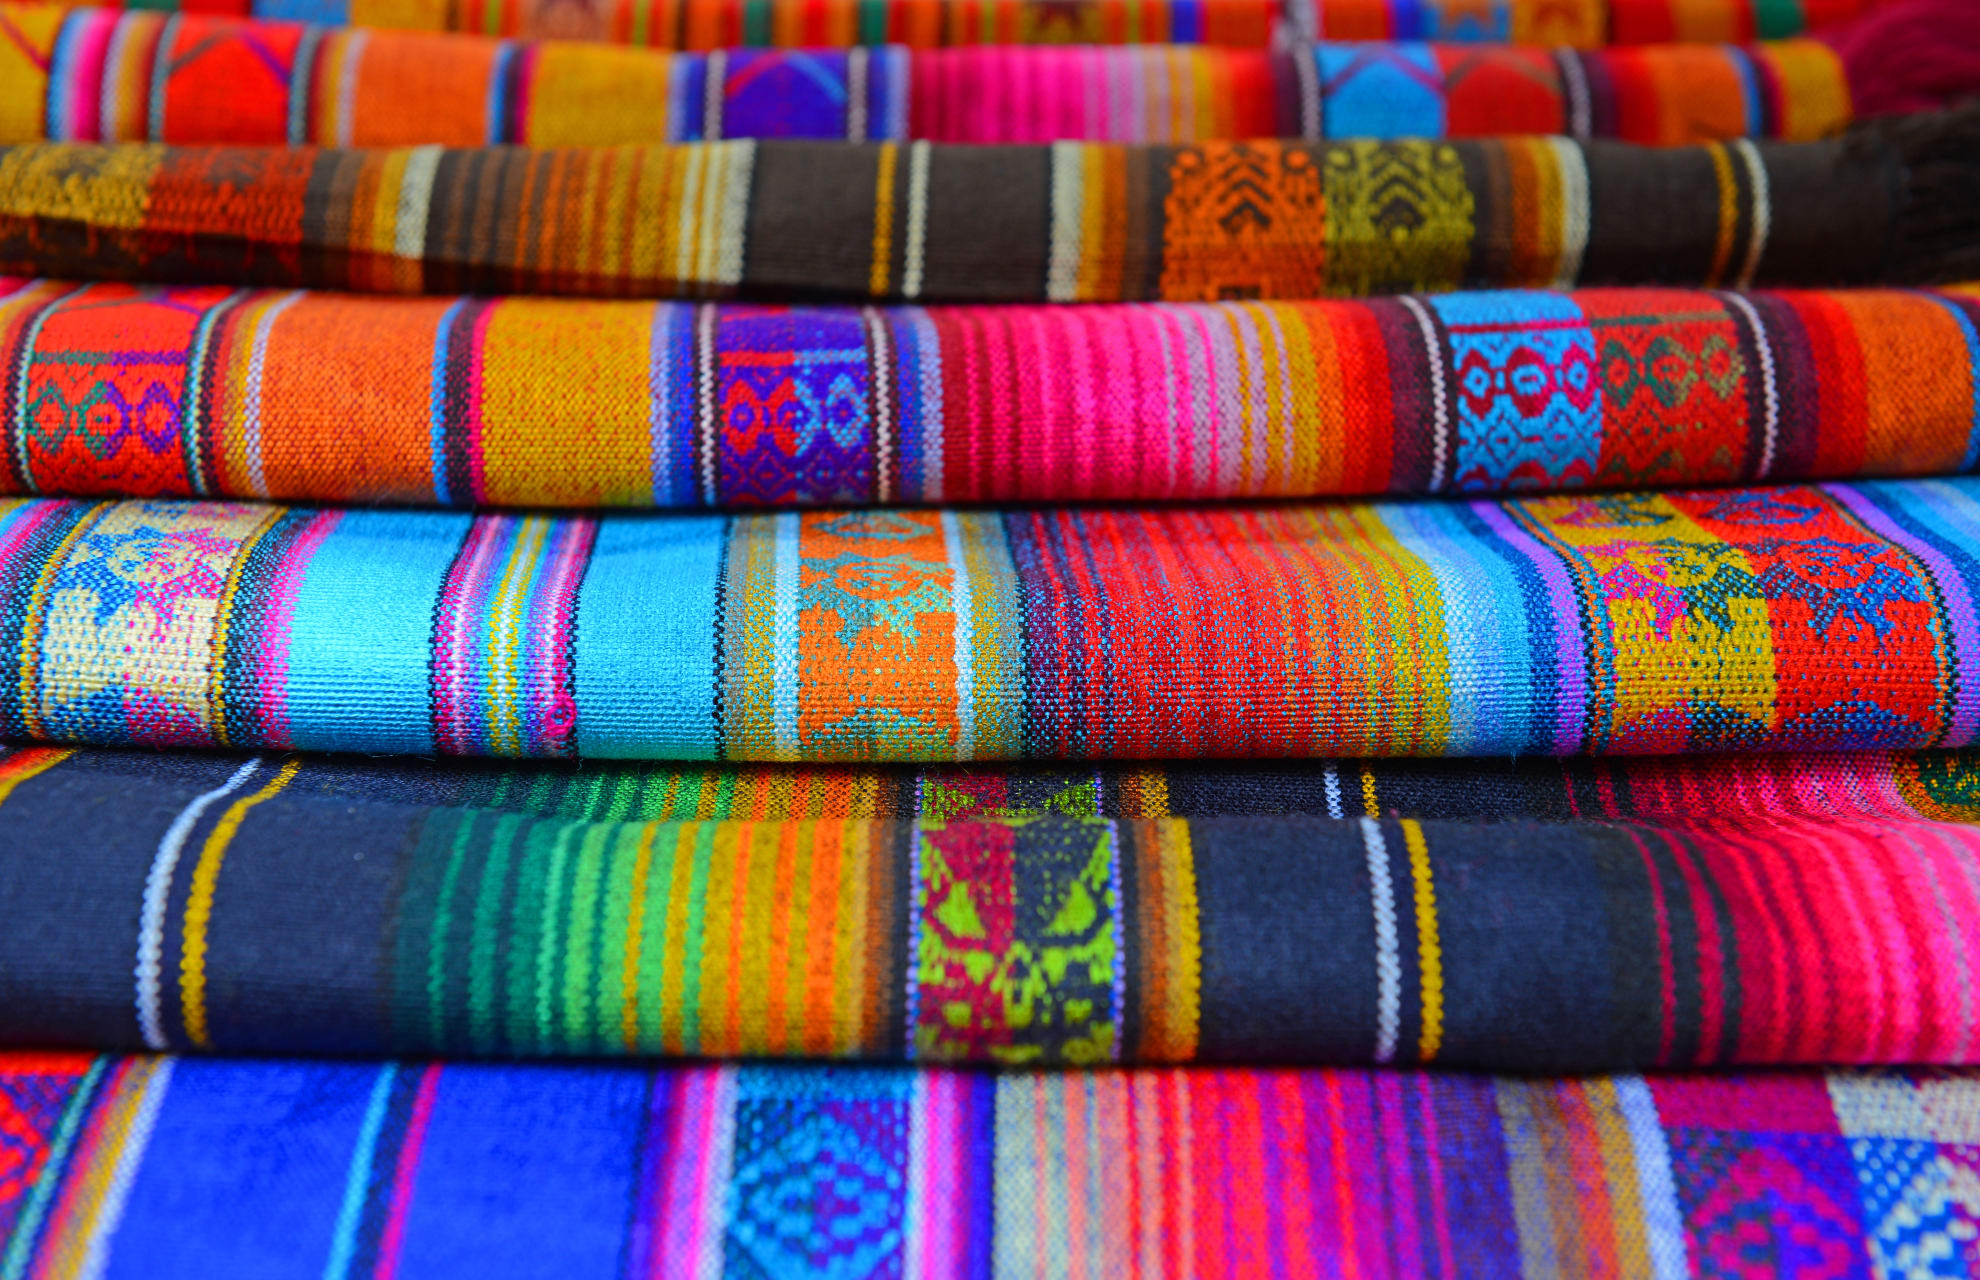 Otavalo - Demonstration of Handmade Textiles by the Indigenous Nationality of Otavalo